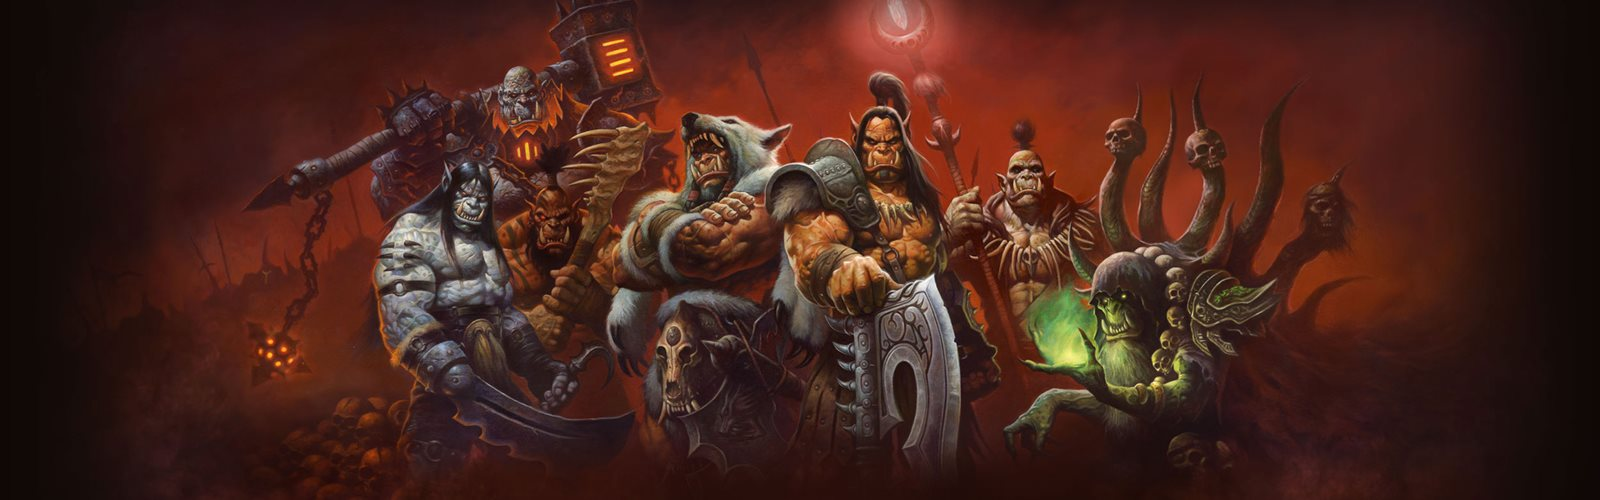 wow-warlords-of-draenor-bg-85.jpg